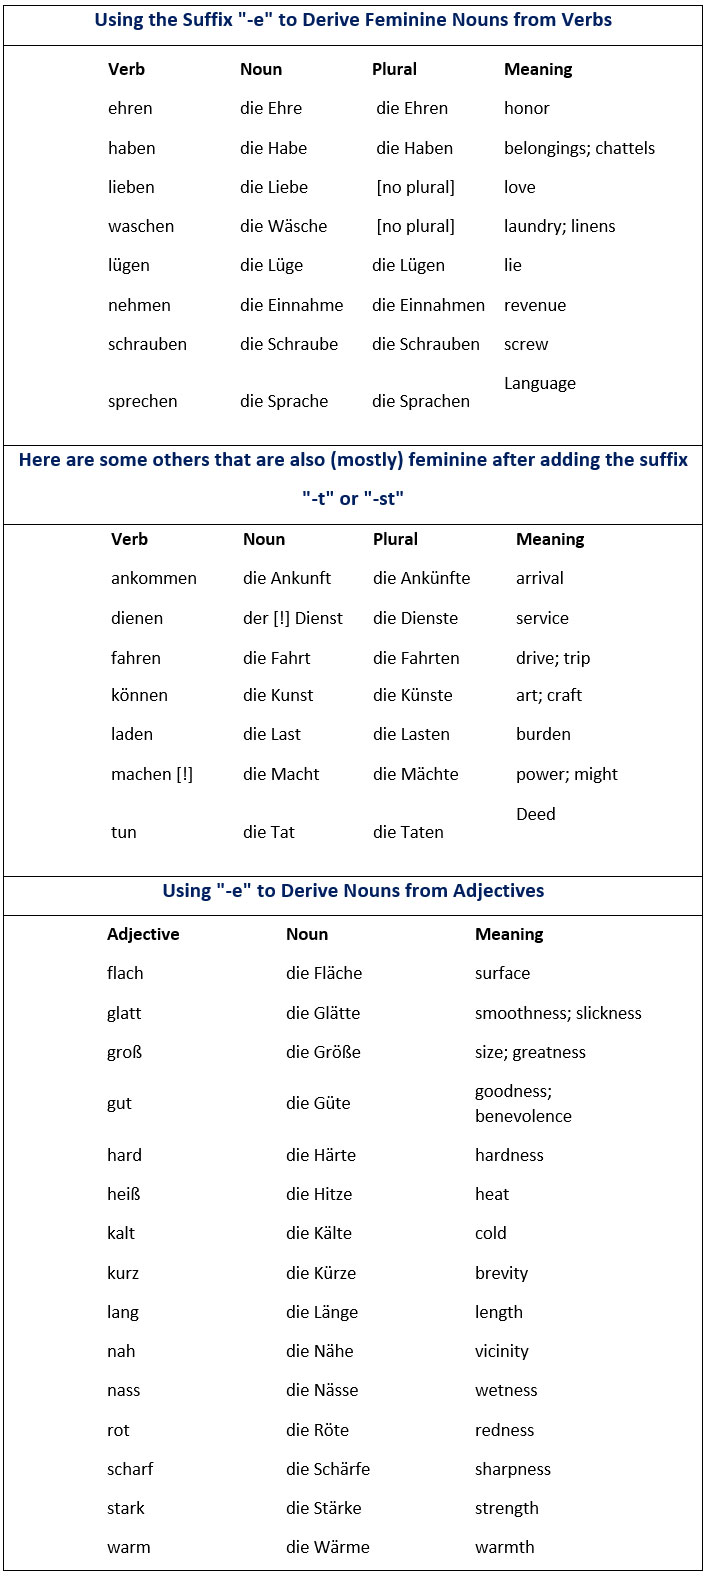 Most common suffixes in German. How they effect the gender